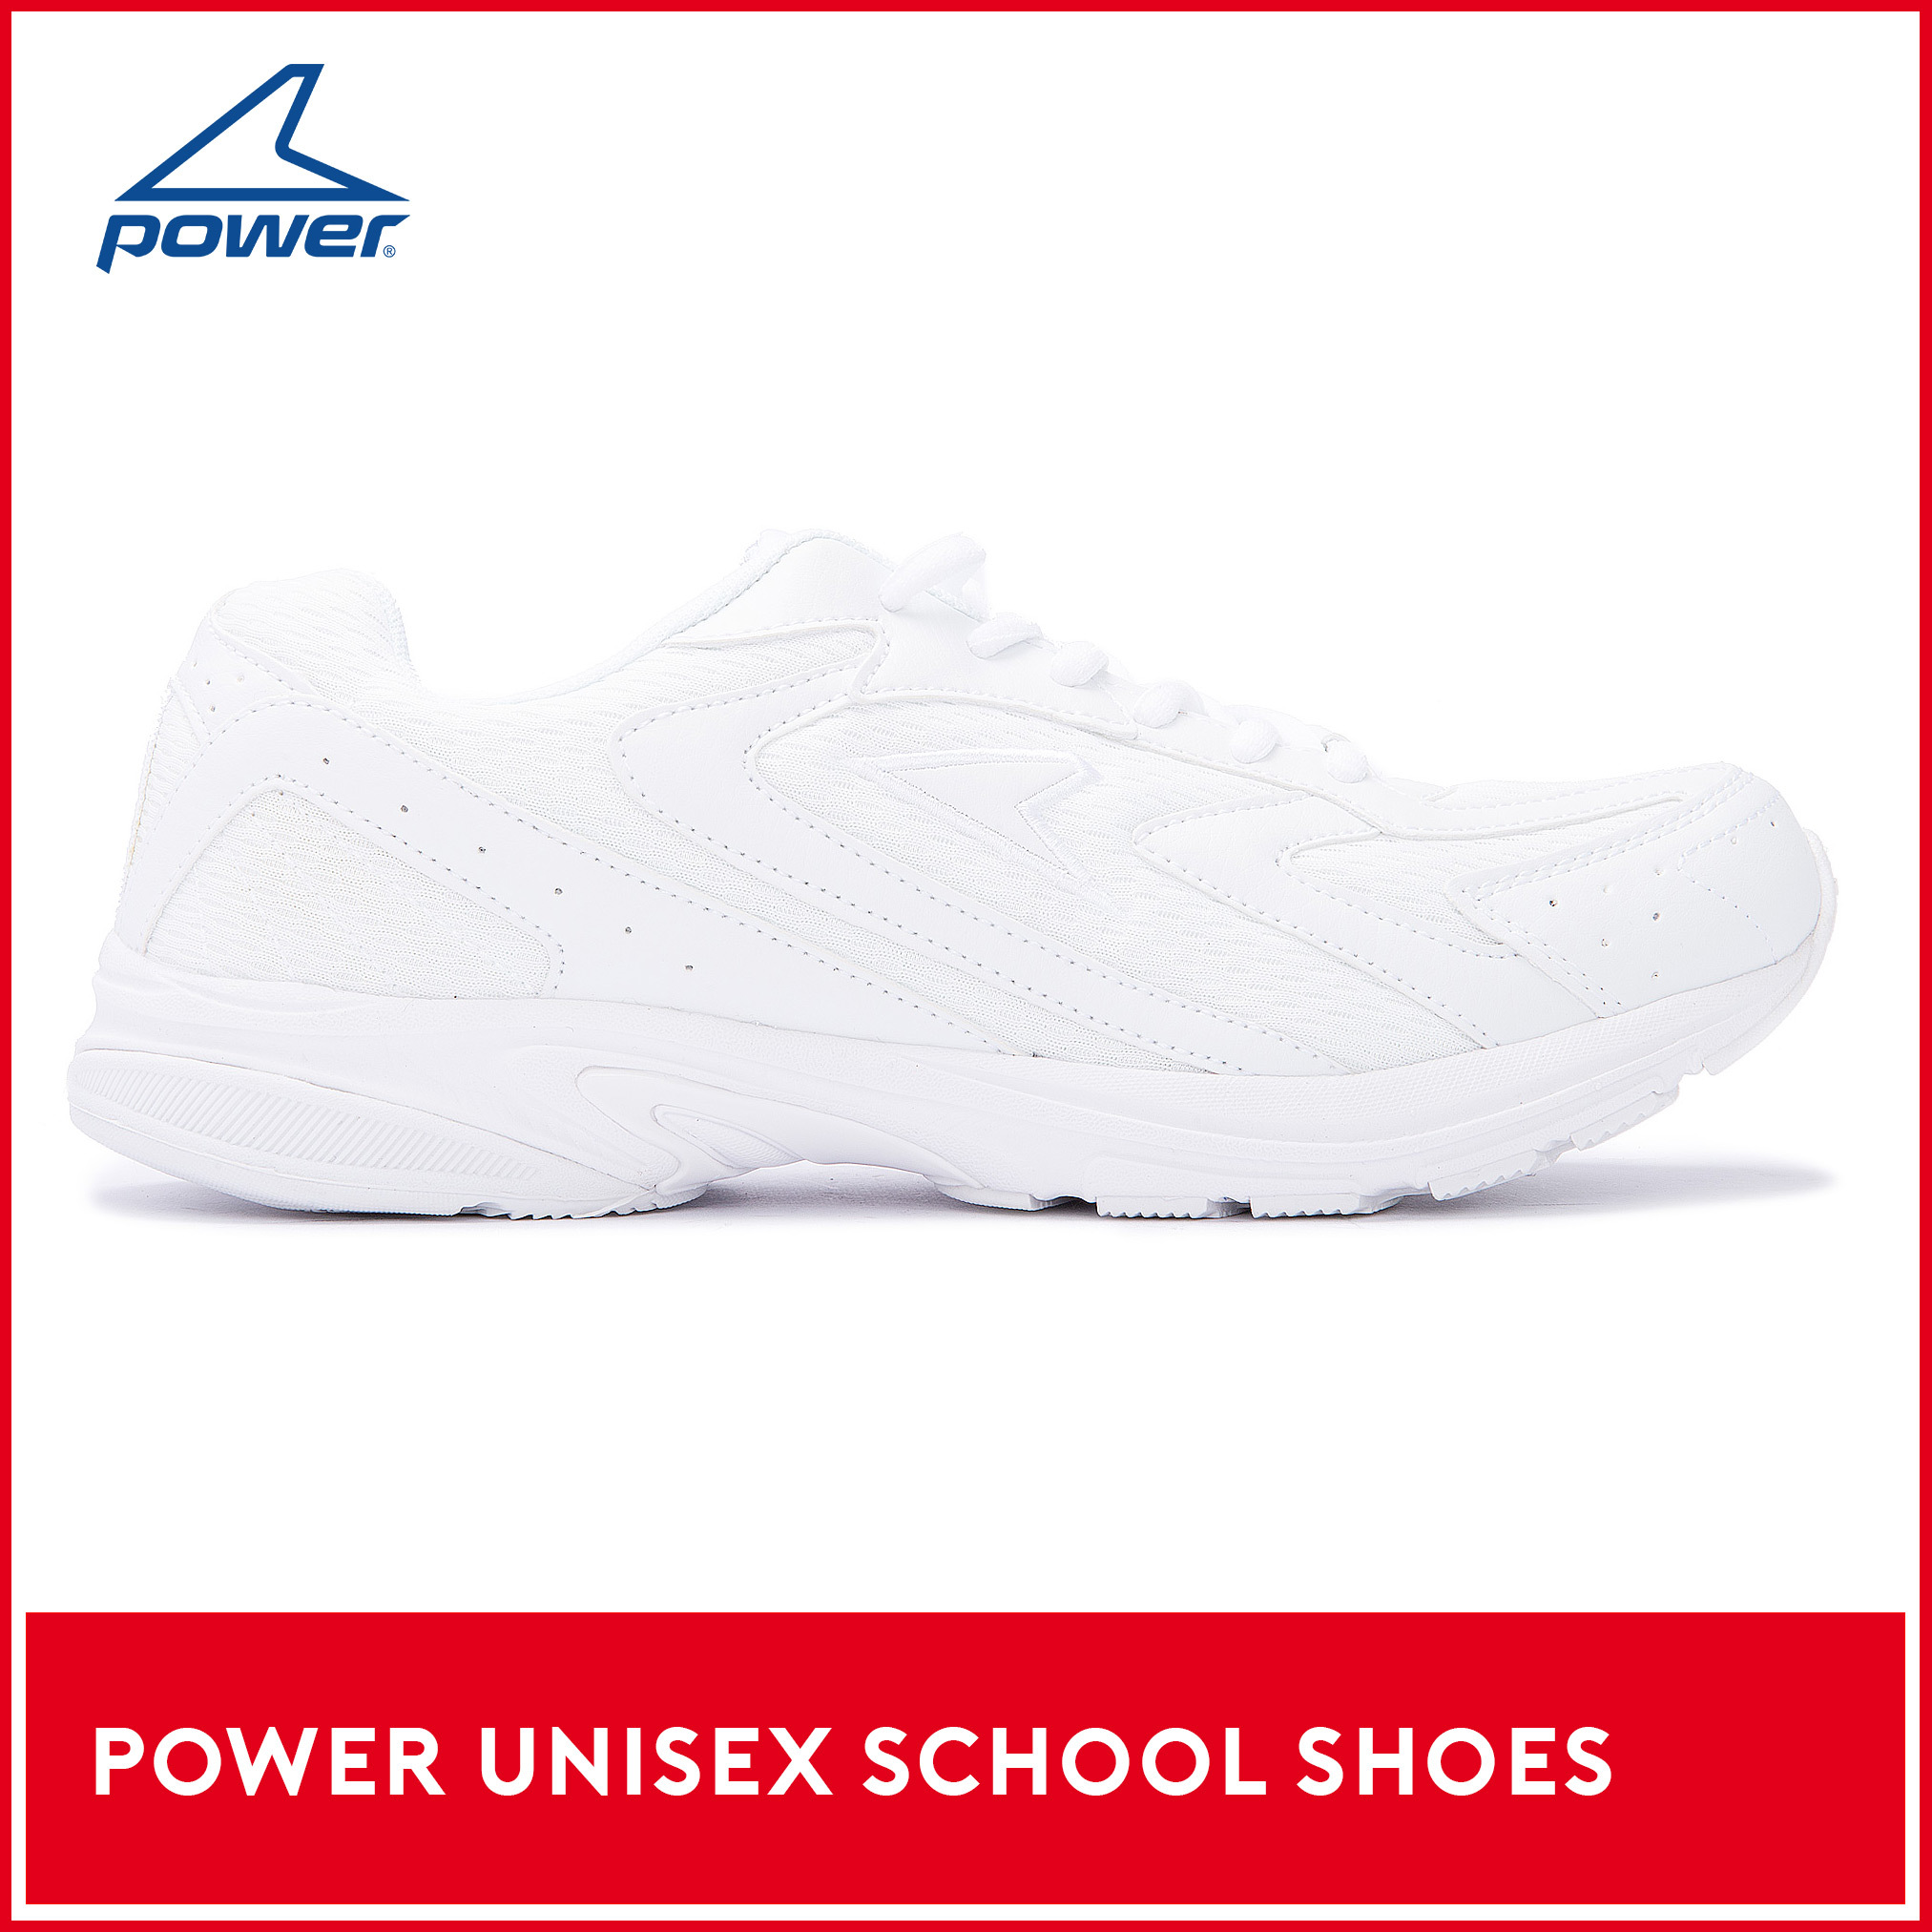 0b9d8f94b19 Show All Item Images. close. fit to viewer. prev next. POWER UNISEX SCHOOL  SHOES 8081289